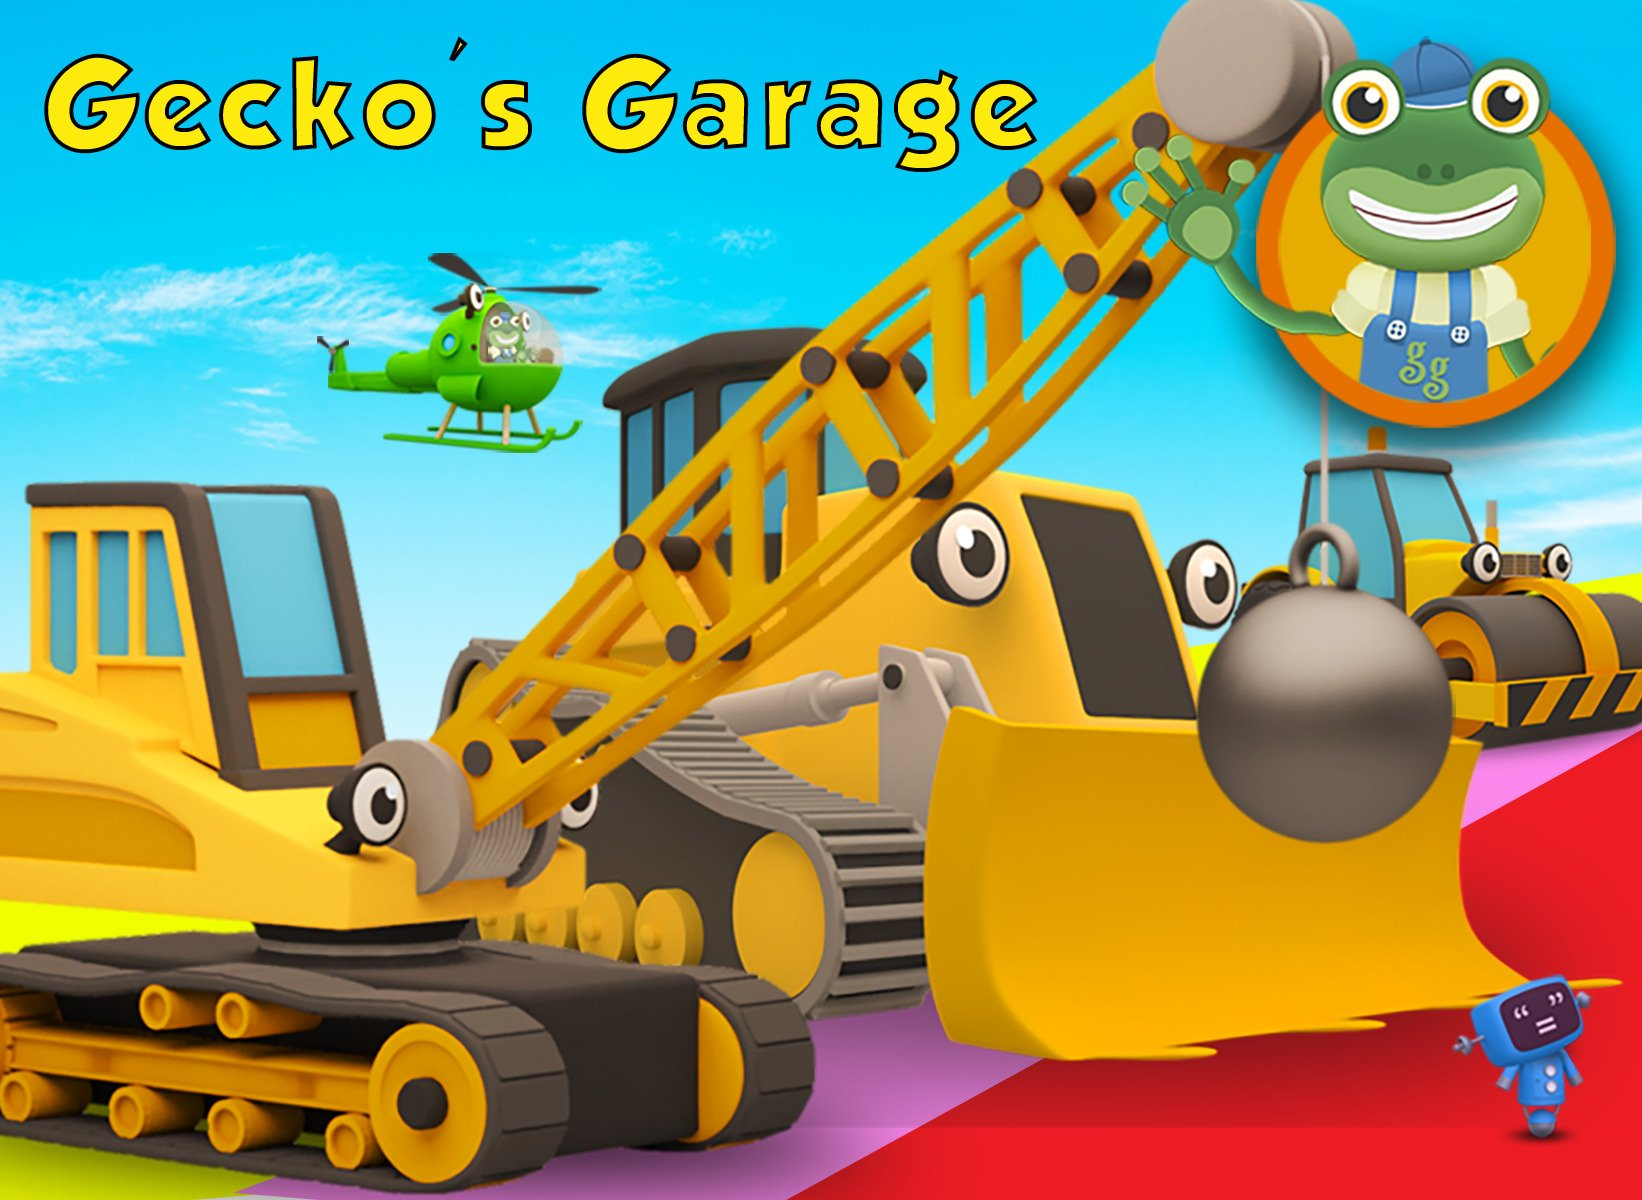 Gecko's Garage - Season 2